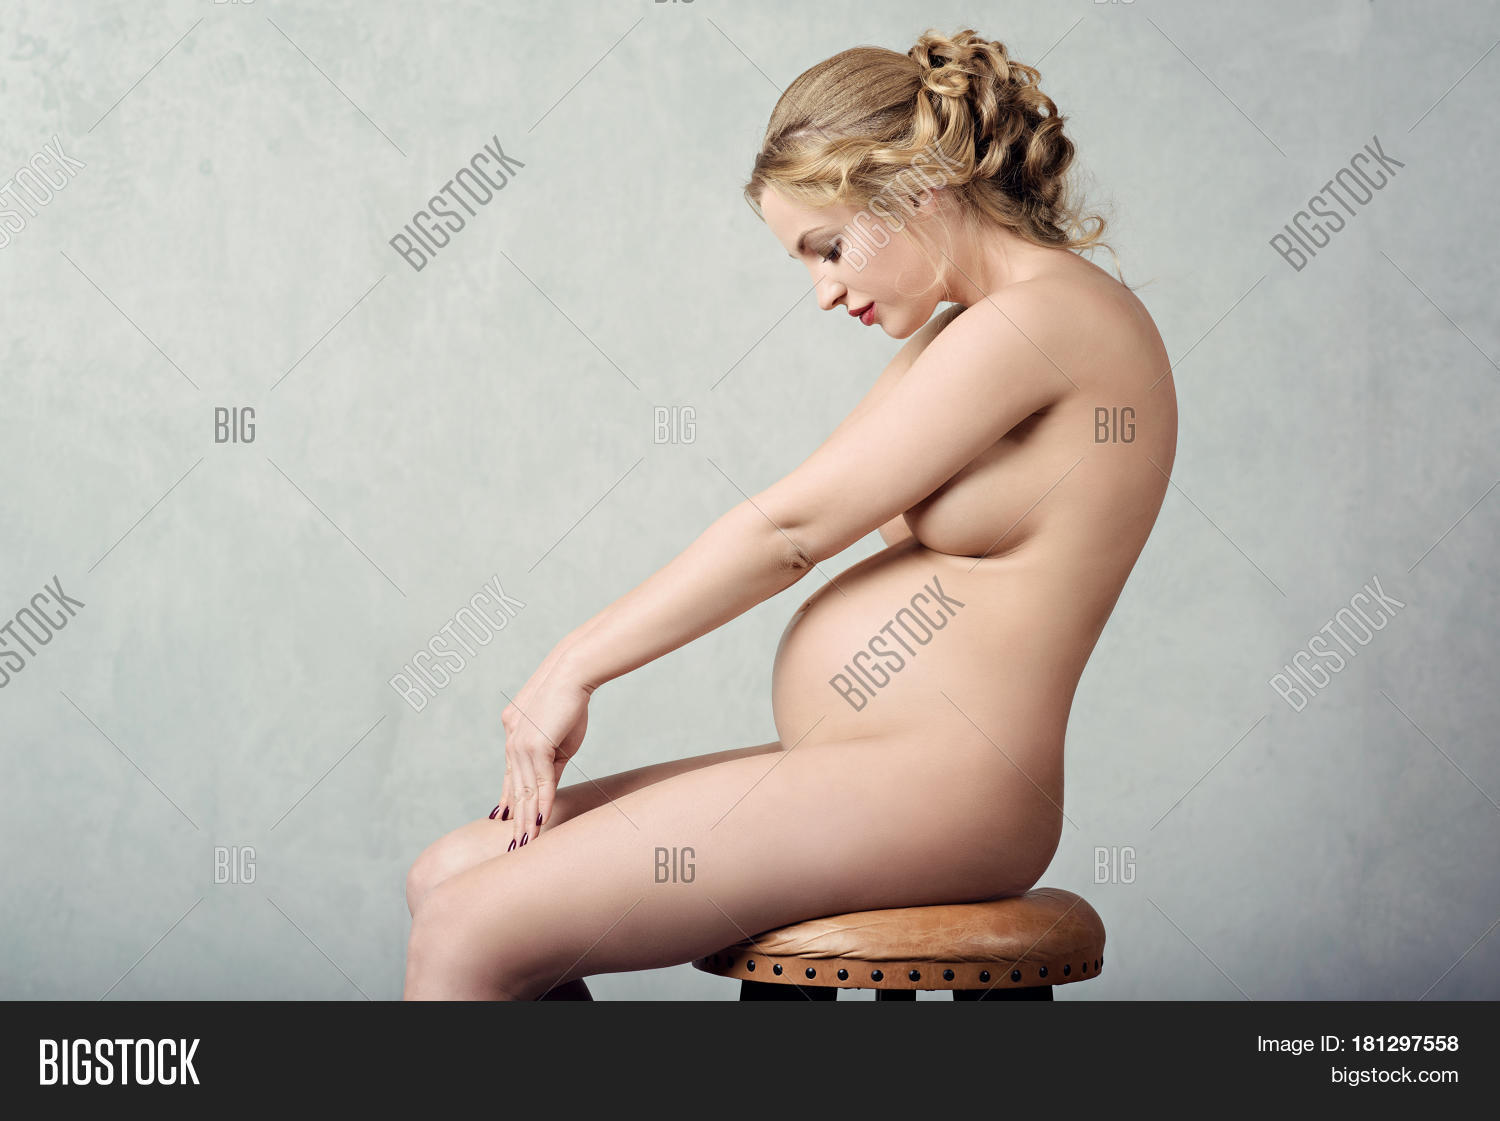 Massage naked female pregnant the valuable information